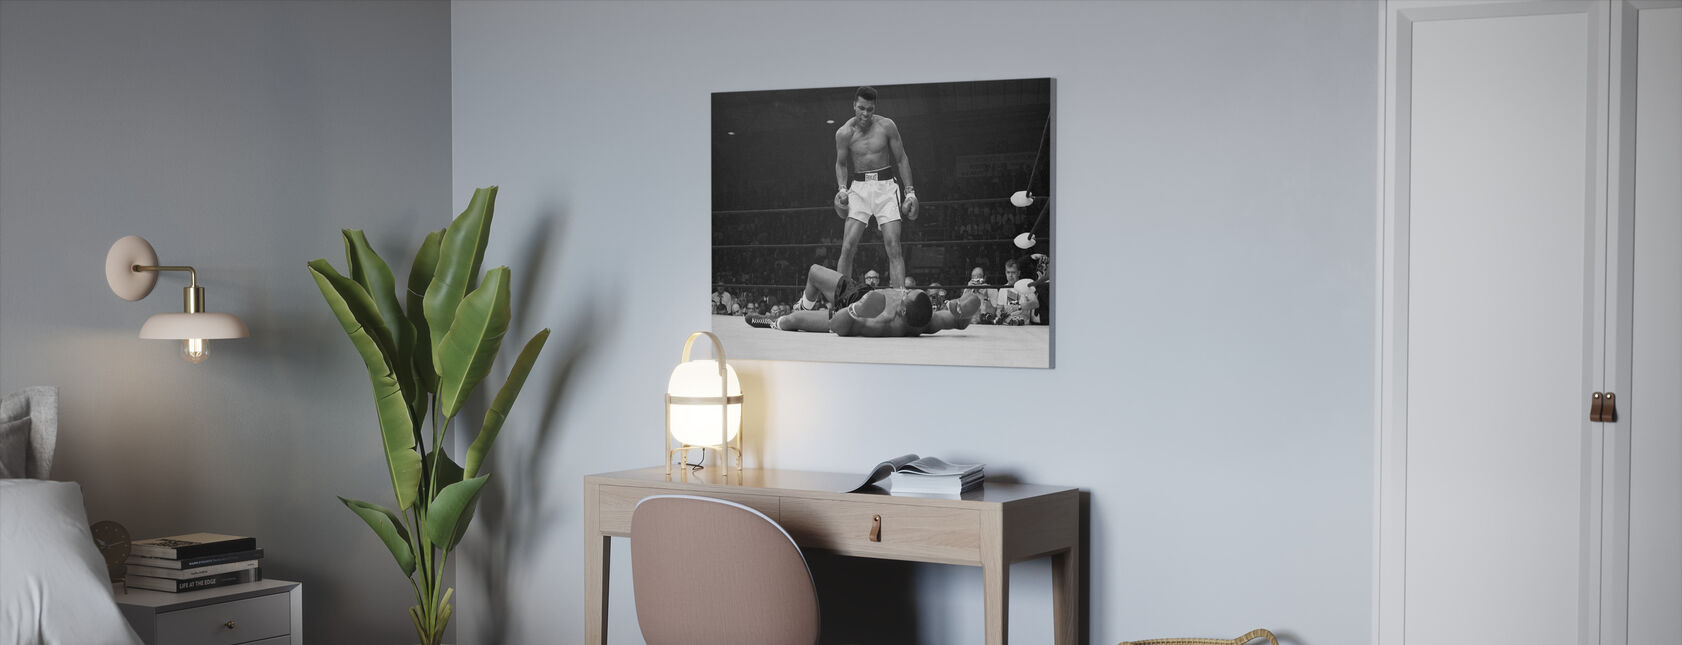 Muhammad Ali vs Sonny Liston - Impression sur toile - Bureau